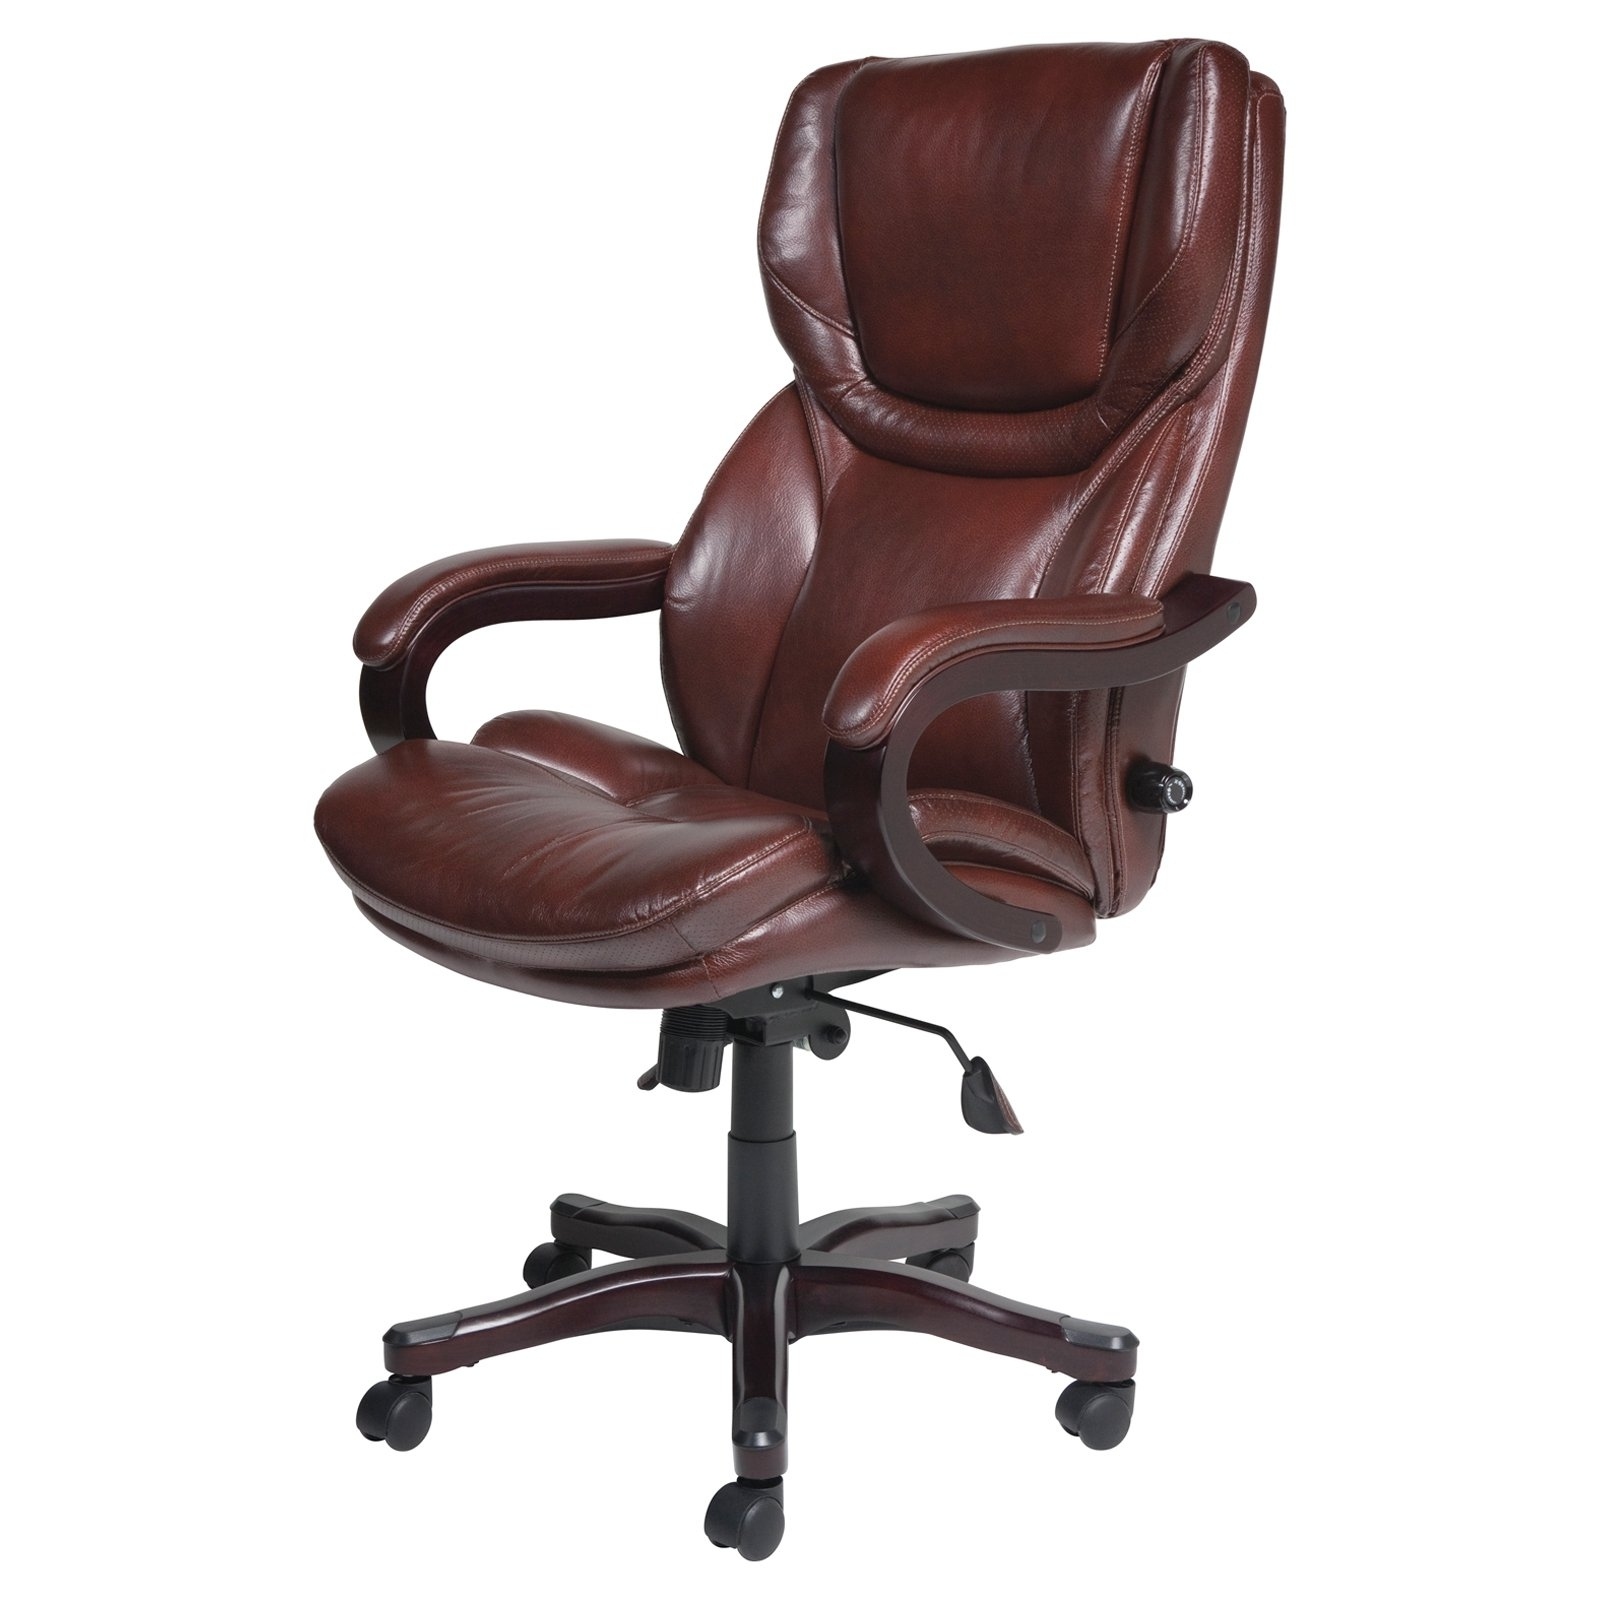 Favorite Essentialsofm Ess 6020 Executive Office Chair, Black With With Executive Office Chairs With Headrest (View 10 of 20)